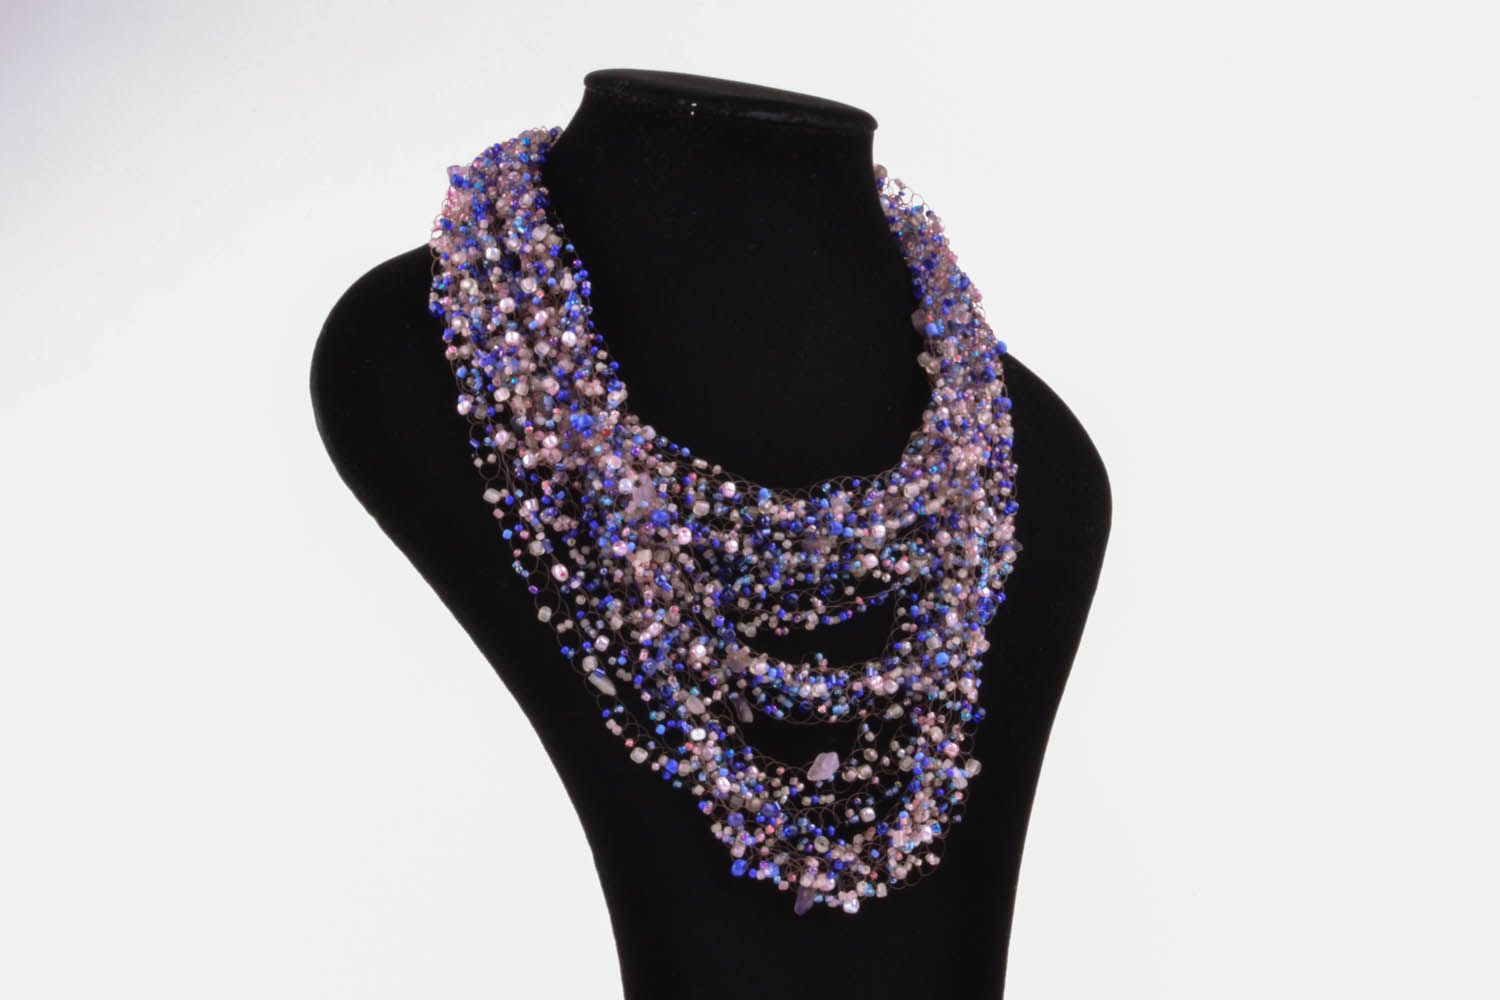 Violet necklace made of beads and natural stones photo 1